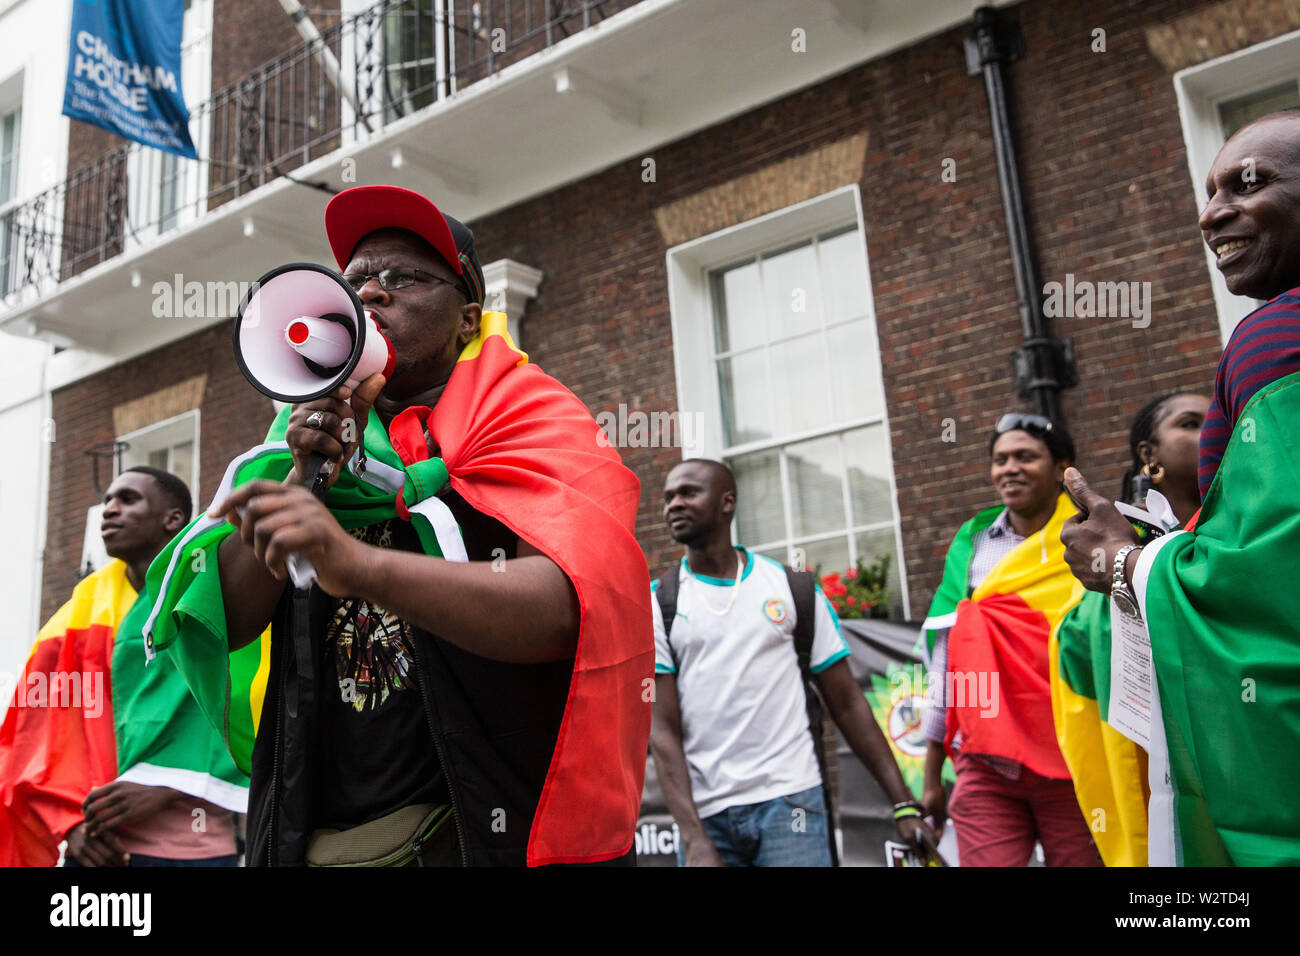 London, UK. 10 July, 2019. Members of the Senegalese community in the UK who support Senegalese civil society movement Aar Li Ñu Bokk protest outside Chatham House during an interview by Evan Davis of BP Group Chief Executive Bob Dudley to discuss balancing increasing energy needs  with climate change considerations. The protest followed a BBC Panorama exposé on a $10bn petrol and gas corruption scandal in Senegal for which they hold BP accountable, as well as the awarding of an oil exploitation contract through Timis Corporation. Credit: Mark Kerrison/Alamy Live News - Stock Image